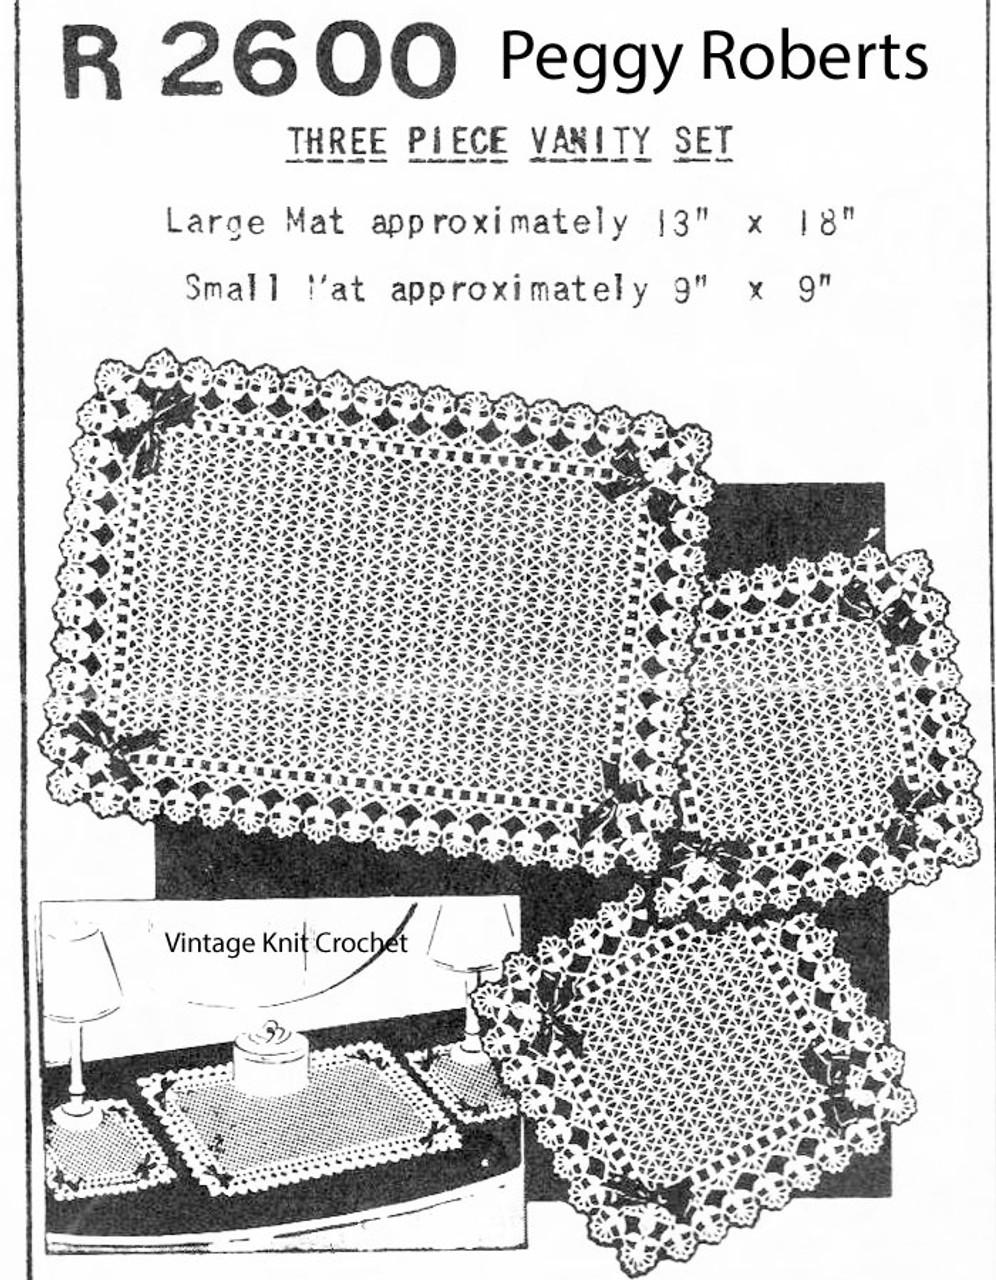 Crocheted Mats Pattern, be-ribboned mesh, Mail Order R-2600